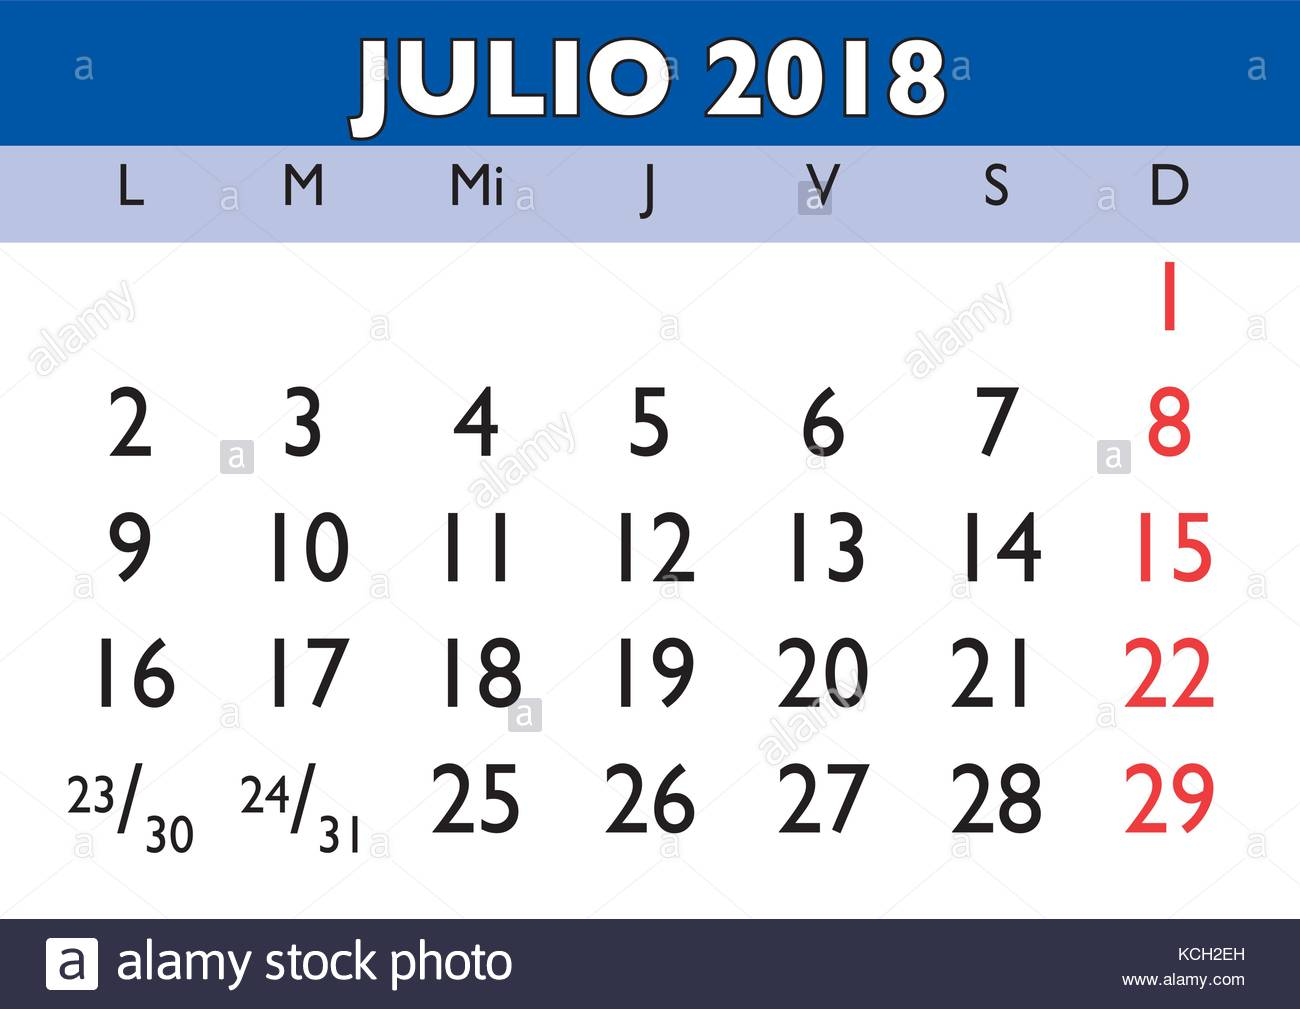 july month in a year 2018 wall calendar in spanish julio 2018 calendario 2018